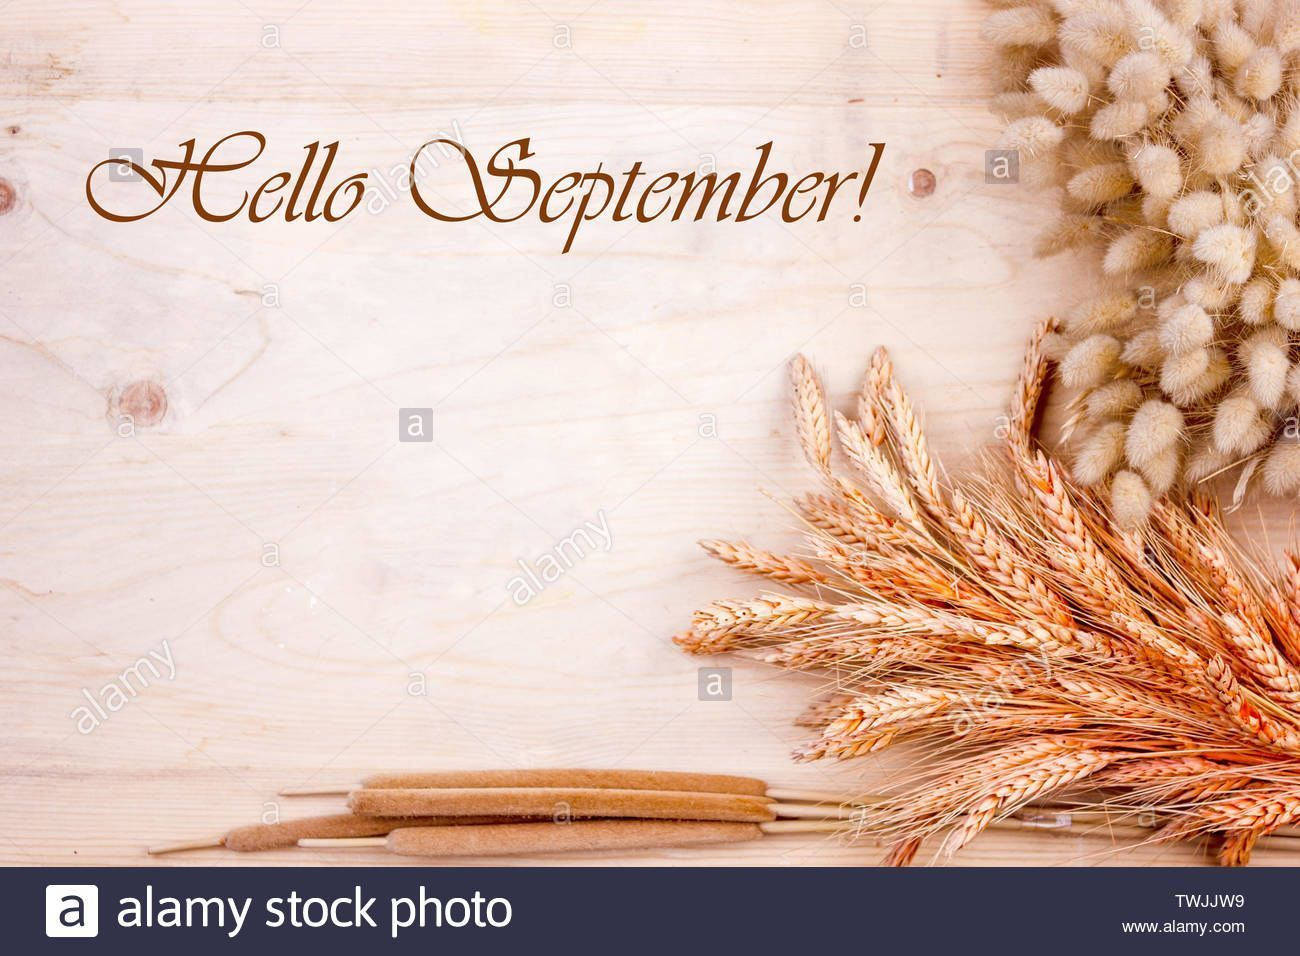 Download this stock image: Dried grain ears and reeds on wooden table. Autumn harvest of bread. Lettering Hello September - TWJJW9 from Alamy's library of millions of high resolution stock photos, illustrations and vectors. #helloseptember Download this stock image: Dried grain ears and reeds on wooden table. Autumn harvest of bread. Lettering Hello September - TWJJW9 from Alamy's library of millions of high resolution stock photos, illustrations and vectors. #helloseptember Download this stock #helloseptember